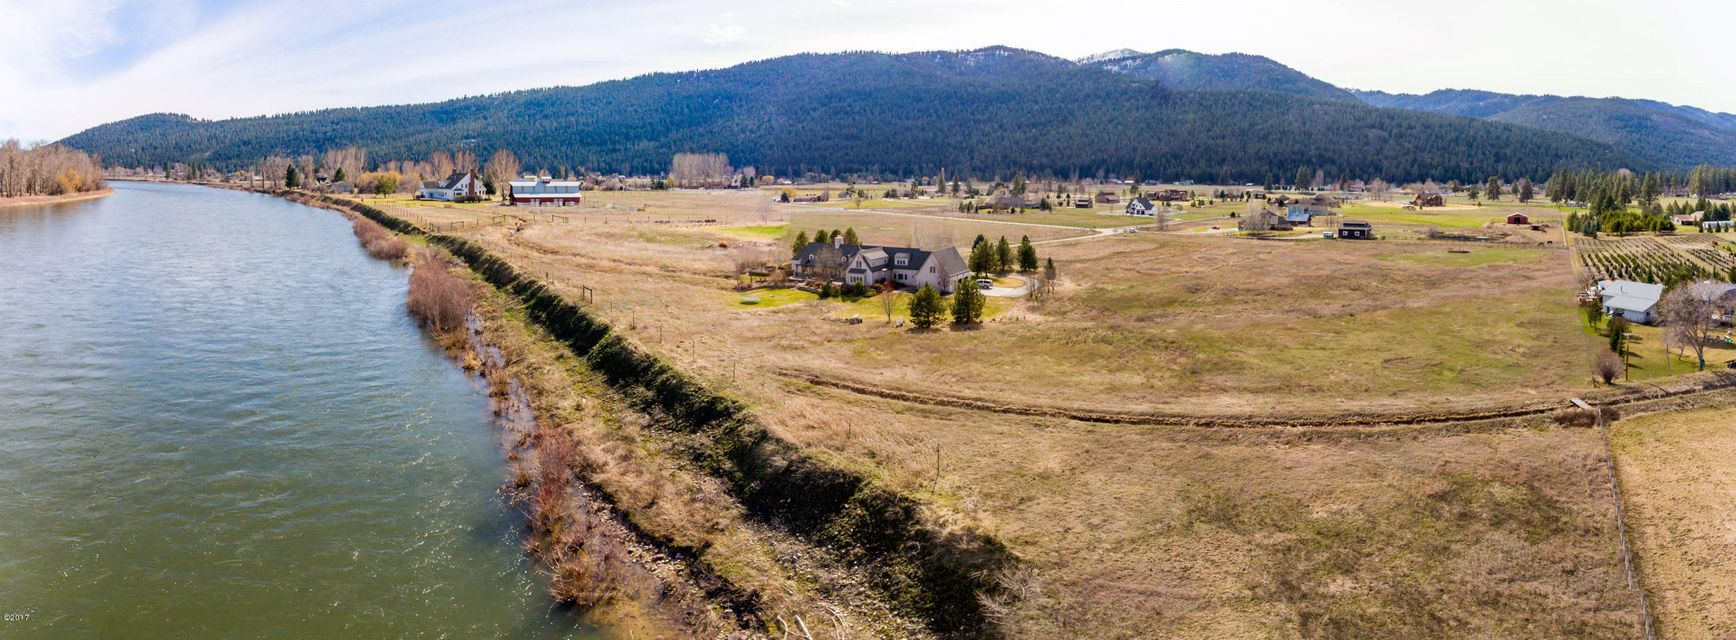 Additional photo for property listing at Lot 9a Windemere Drive  Missoula, Montana 59804 United States